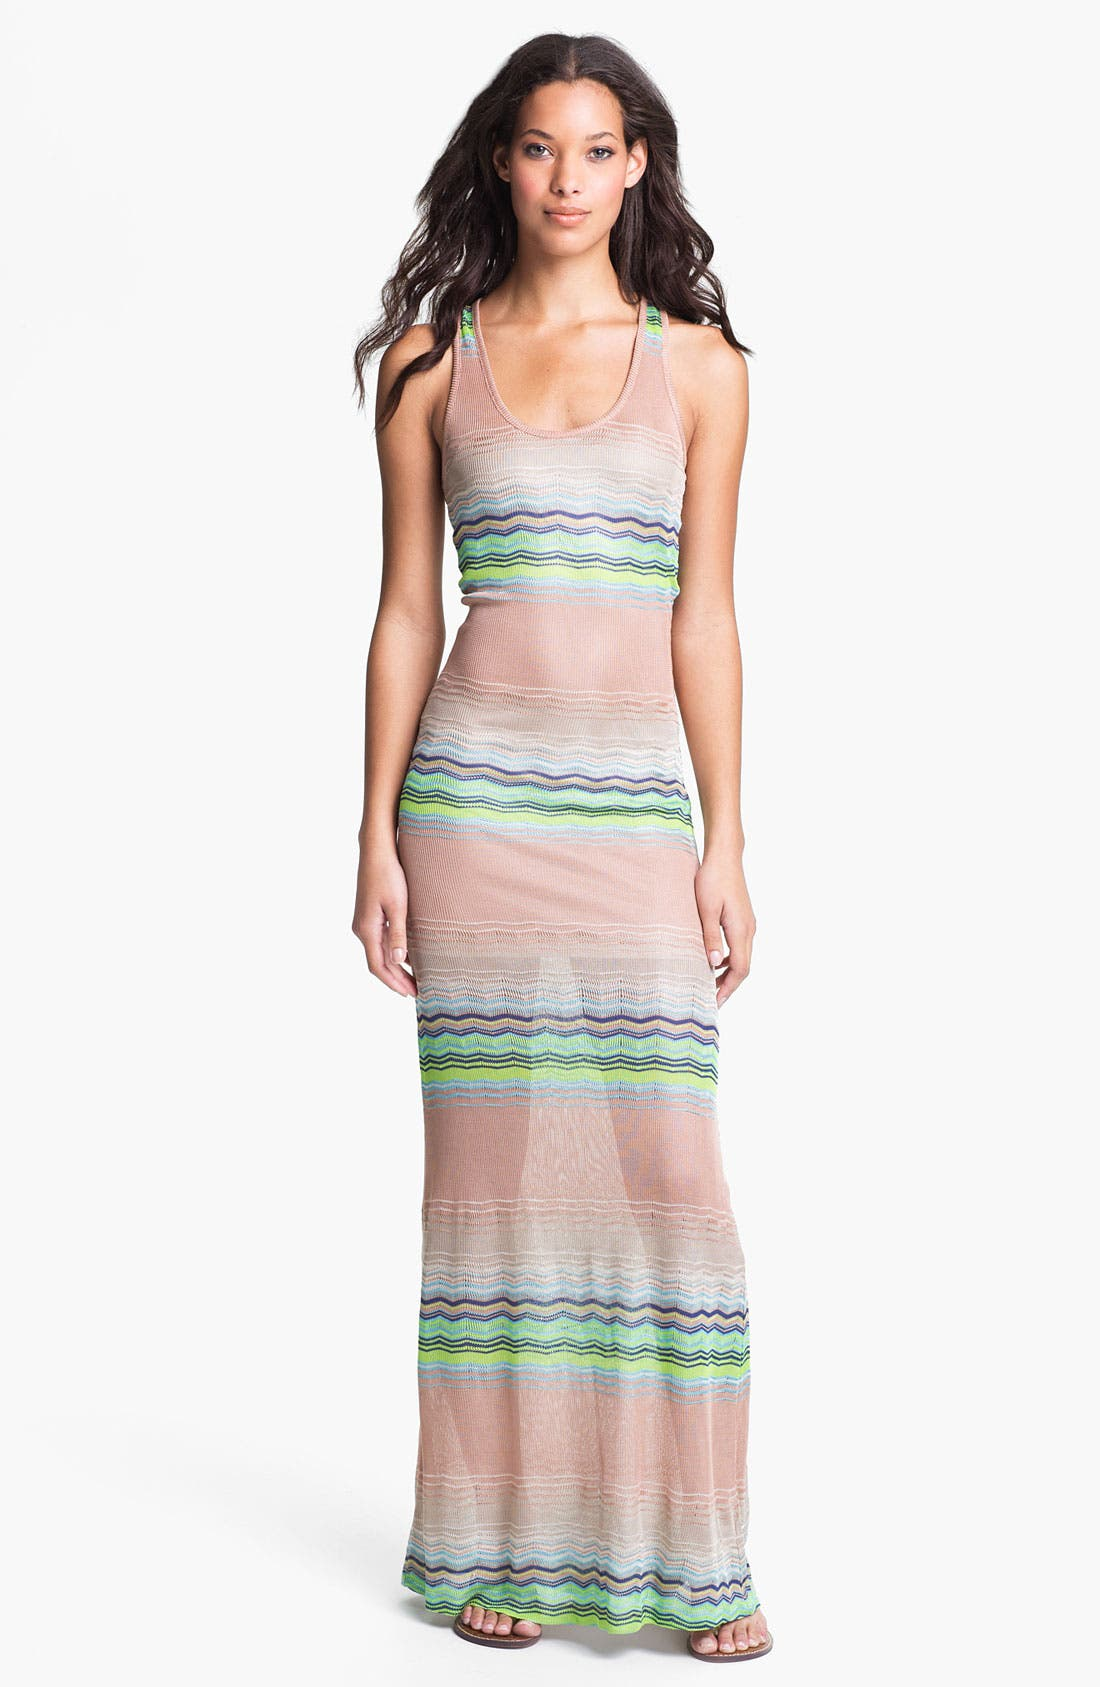 Alternate Image 1 Selected - Young, Fabulous & Broke 'Hamptons' Zigzag Stripe Maxi Dress